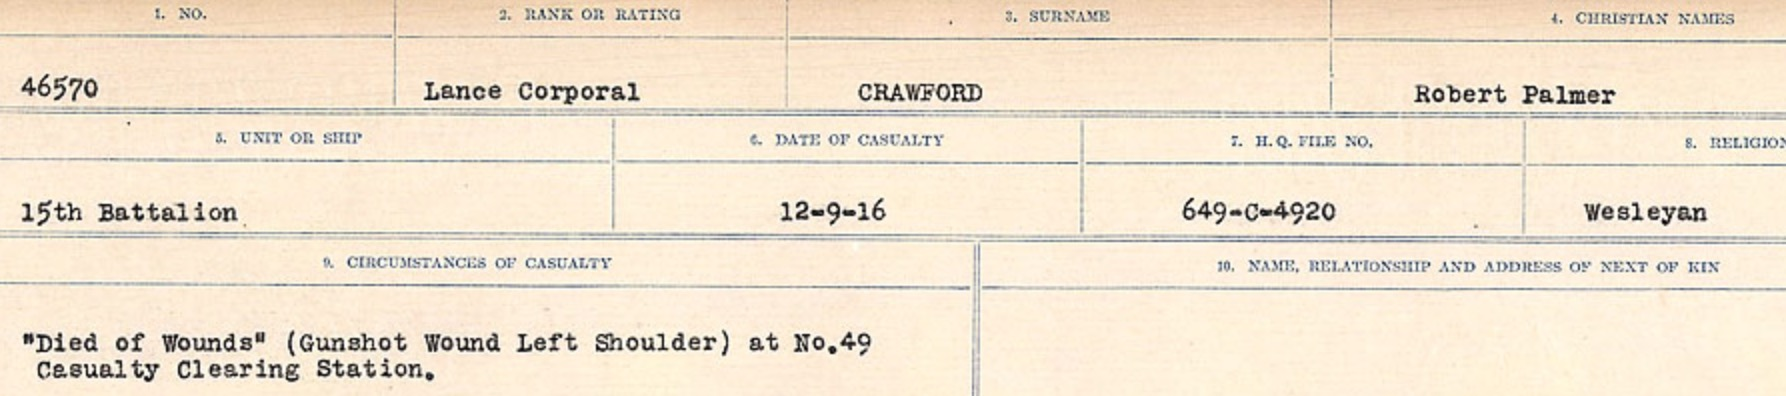 Circumstances of death registers– Source: Library and Archives Canada. CIRCUMSTANCES OF DEATH REGISTERS, FIRST WORLD WAR Surnames: CRABB TO CROSSLAND Microform Sequence 24; Volume Number 31829_B016733. Reference RG150, 1992-93/314, 168. Page 389 of 788.